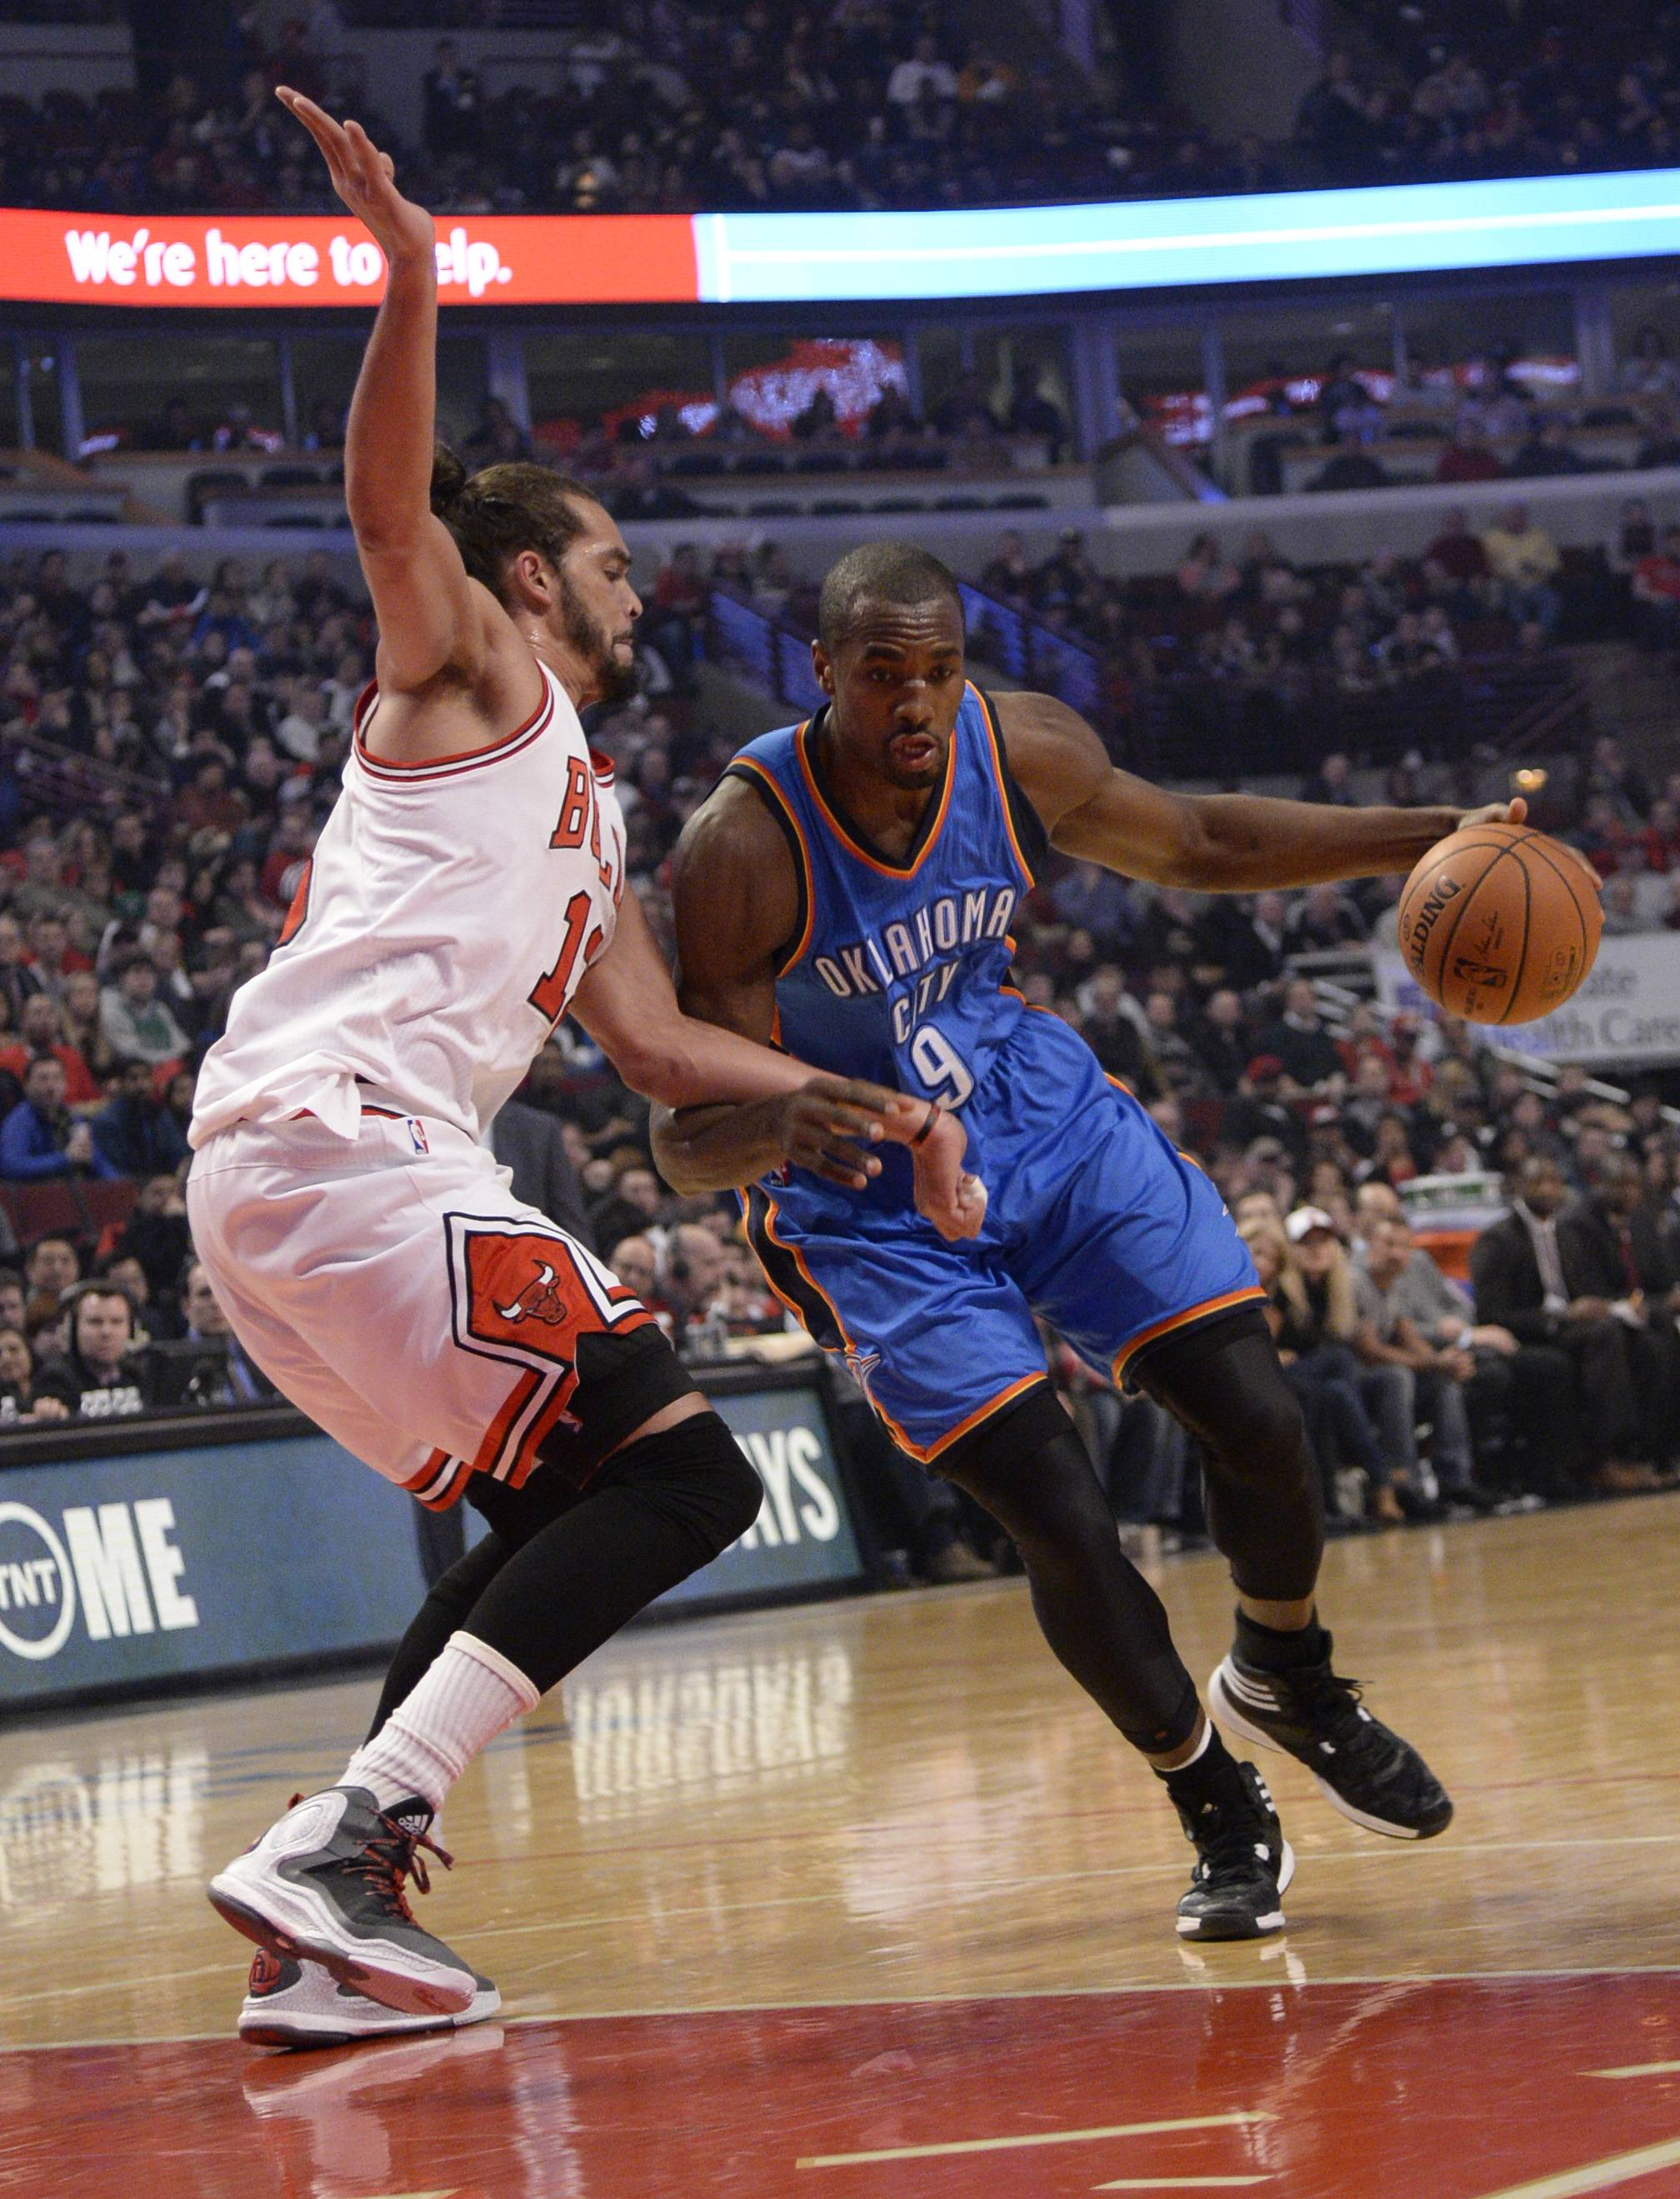 Oklahoma City Thunder forward Serge Ibaka (9) is defended by Chicago Bulls center Joakim Noah (13) during the first half of an NBA basketball game, Thursday, March 5, 2015 in Chicago.